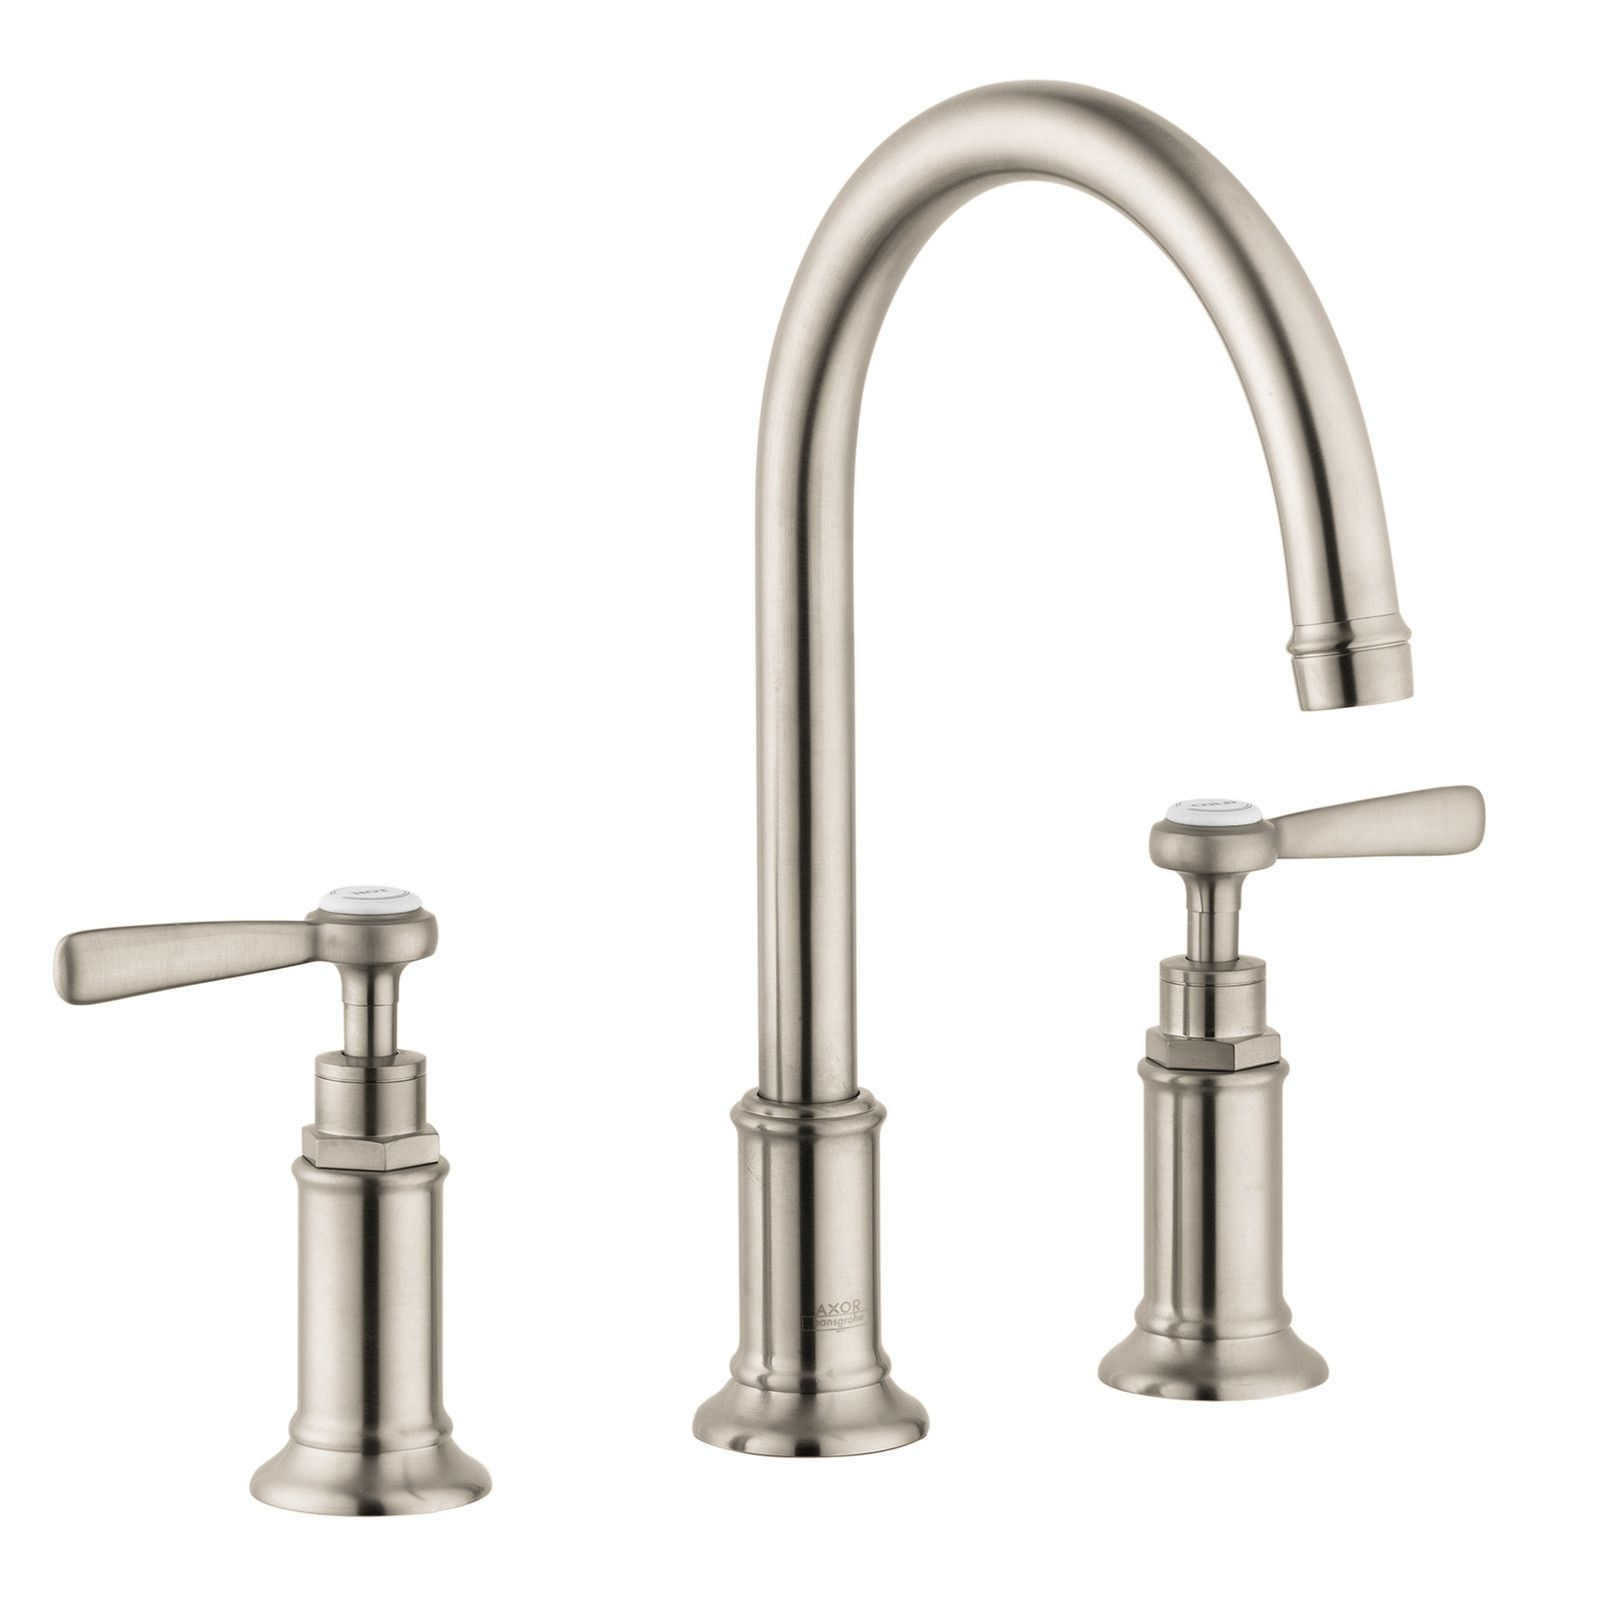 Hansgrohe 16514821 Brushed Nickel Axor Montreux Bathroom Faucet